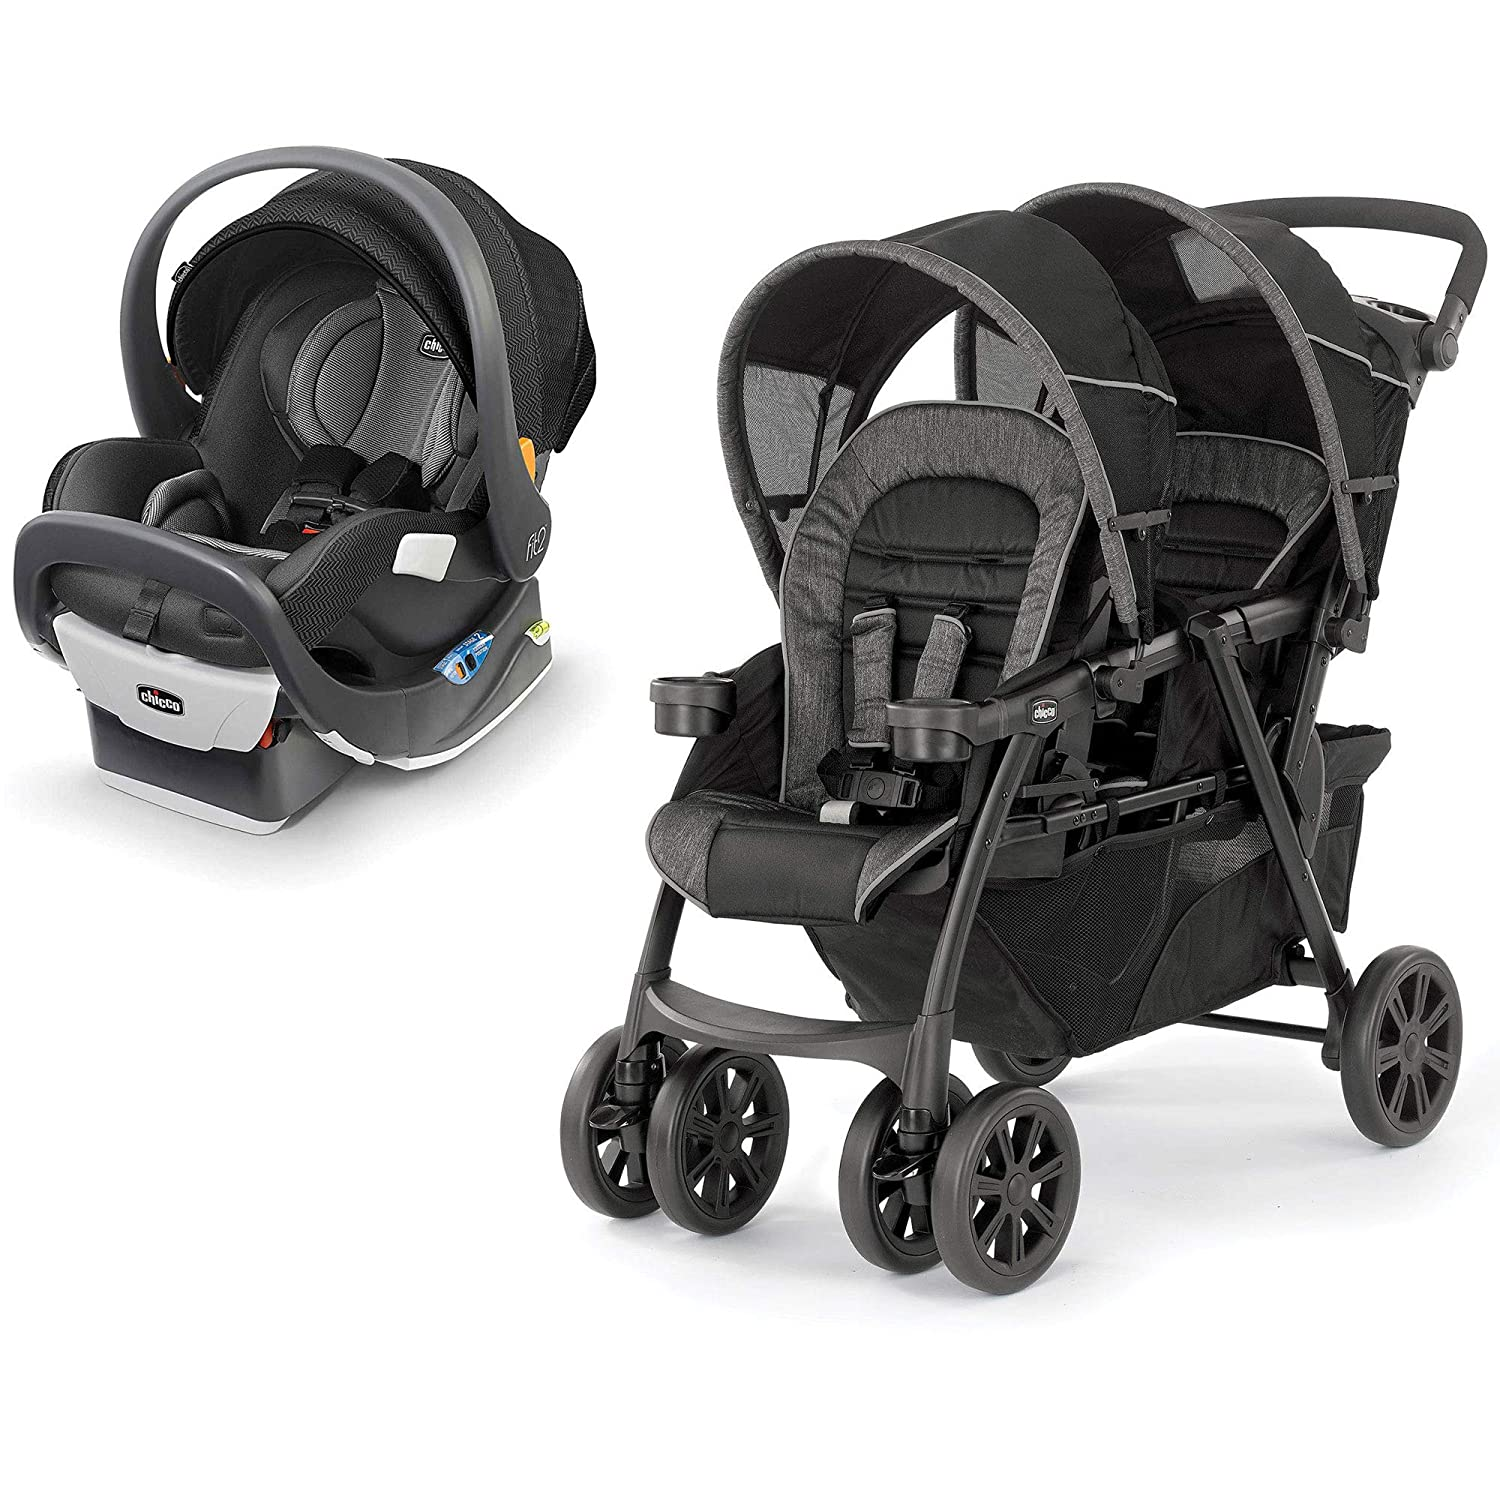 Chicco Fit2 Infant & Toddler Car Seat, Tempo w/ Double